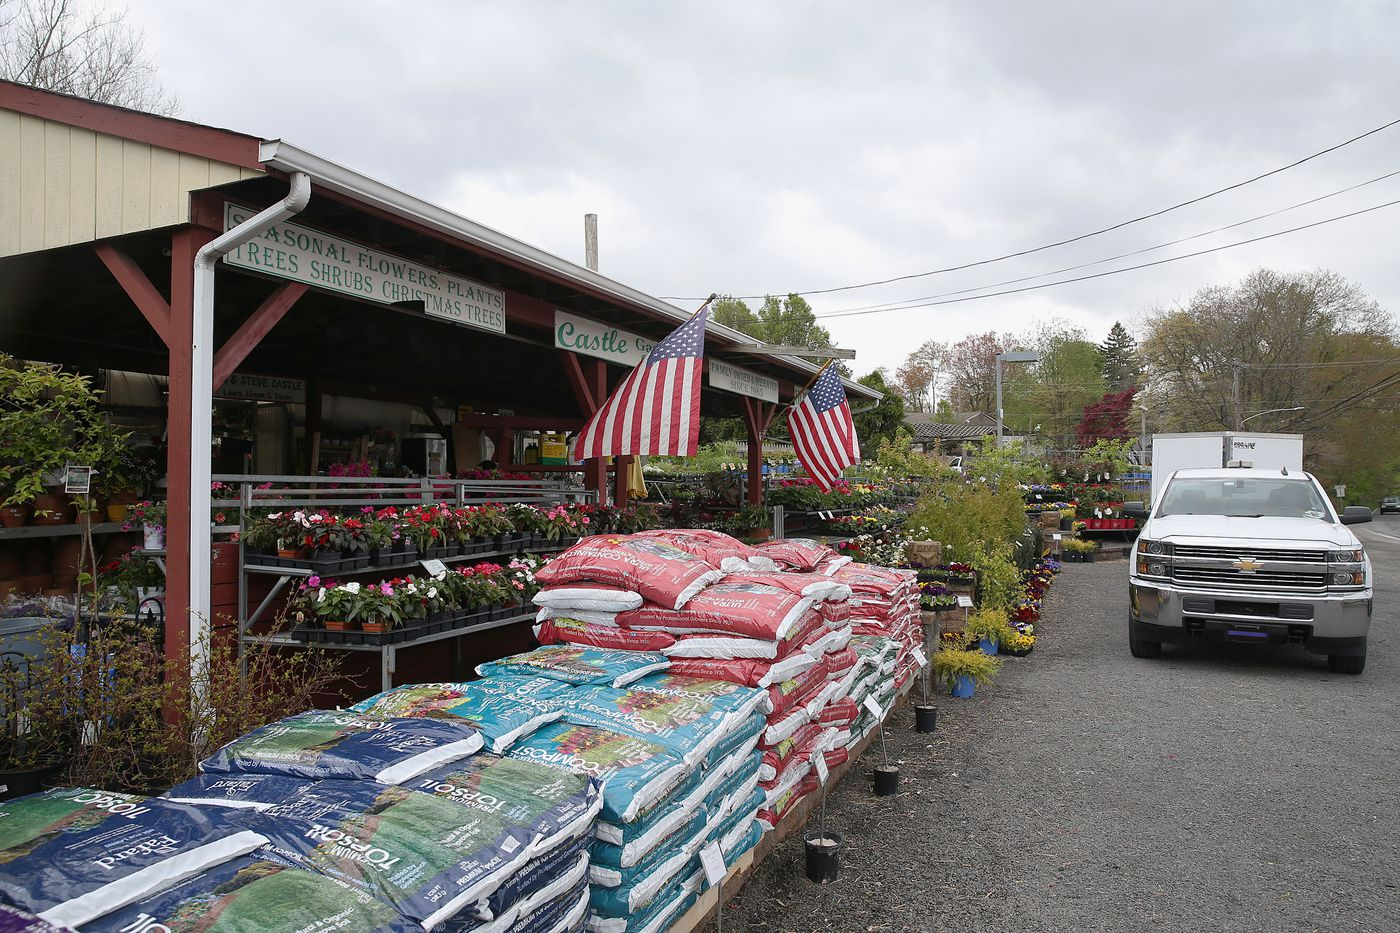 Bucks Garden Center Surprises Customer By Delivering Groceries And Hot Food With Her Flowers